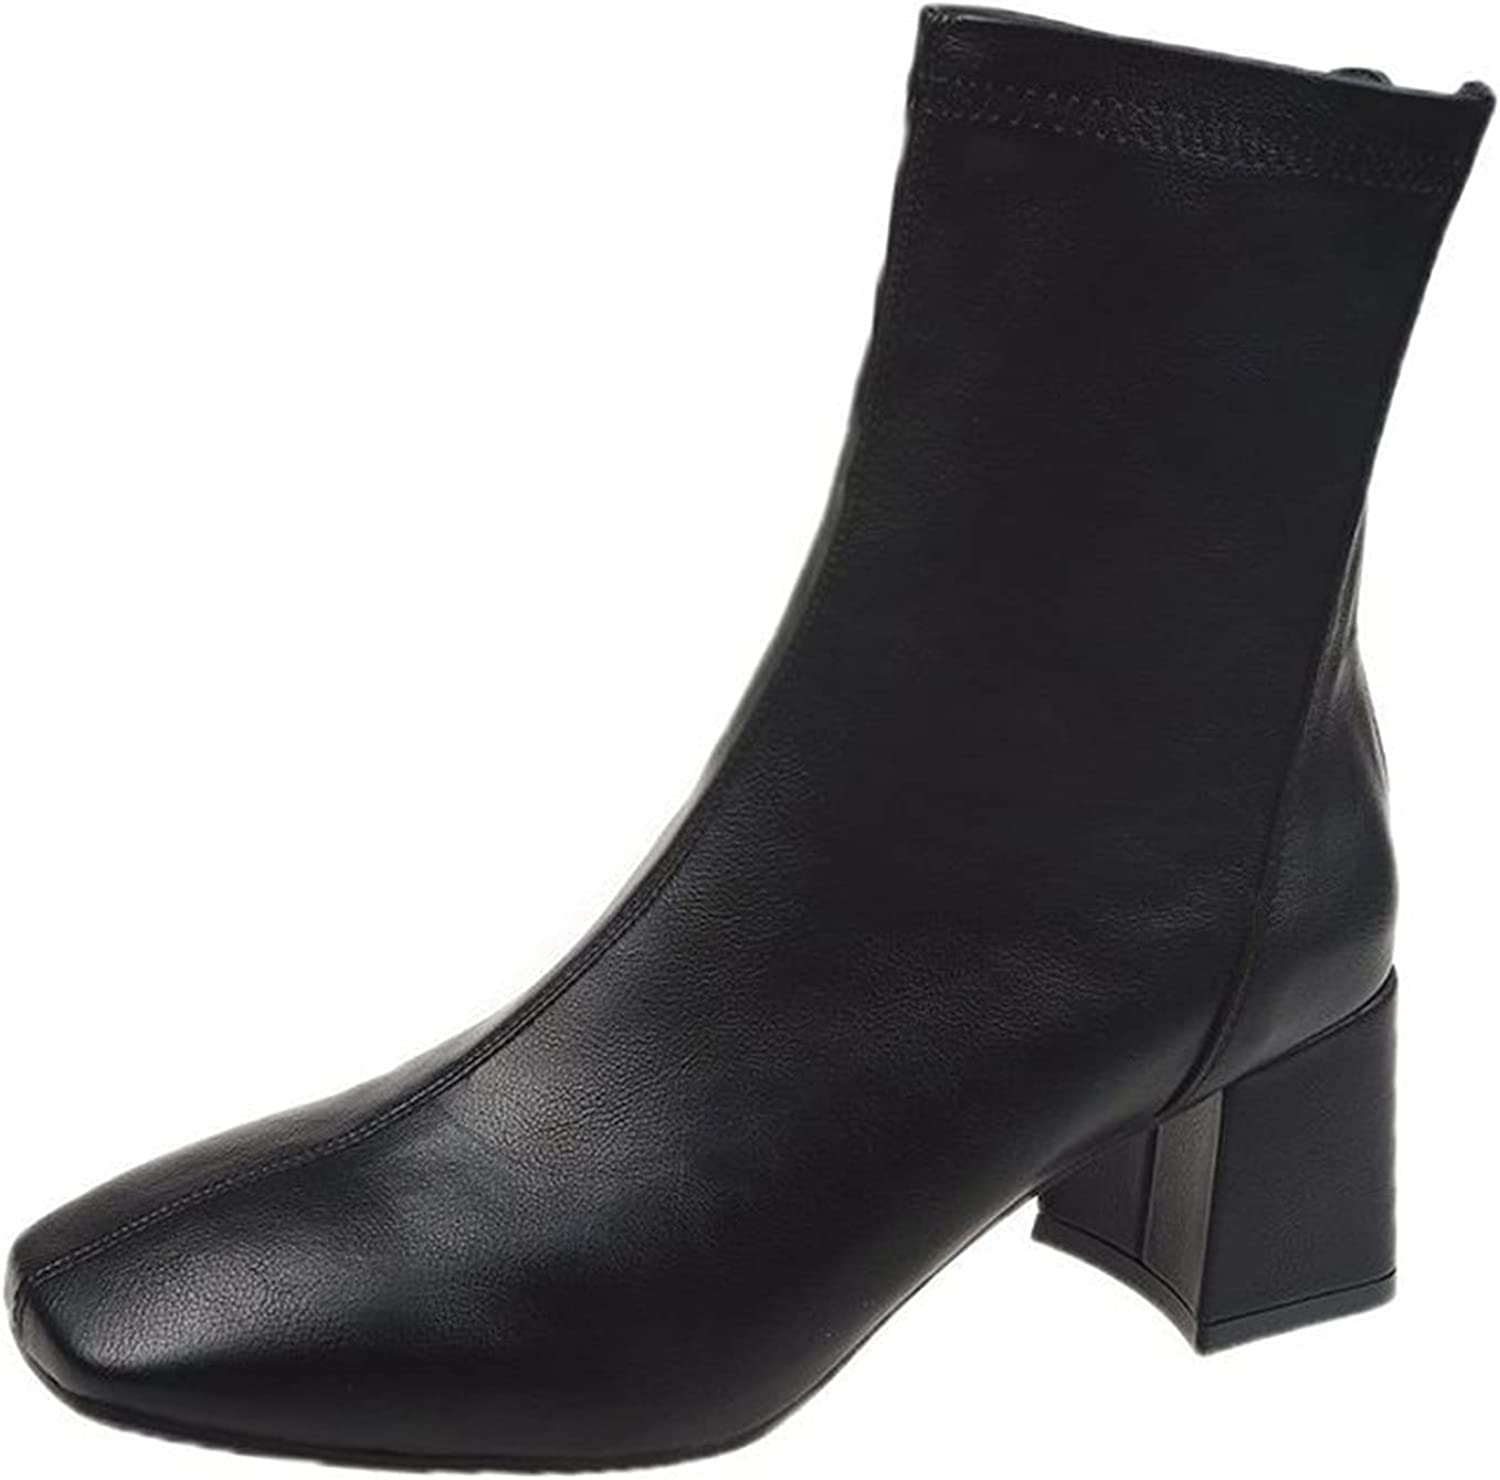 USYFAKGH Womens Ladies Wedge Squared Heels Squared Toe Zip Up Solid Boots Shoes